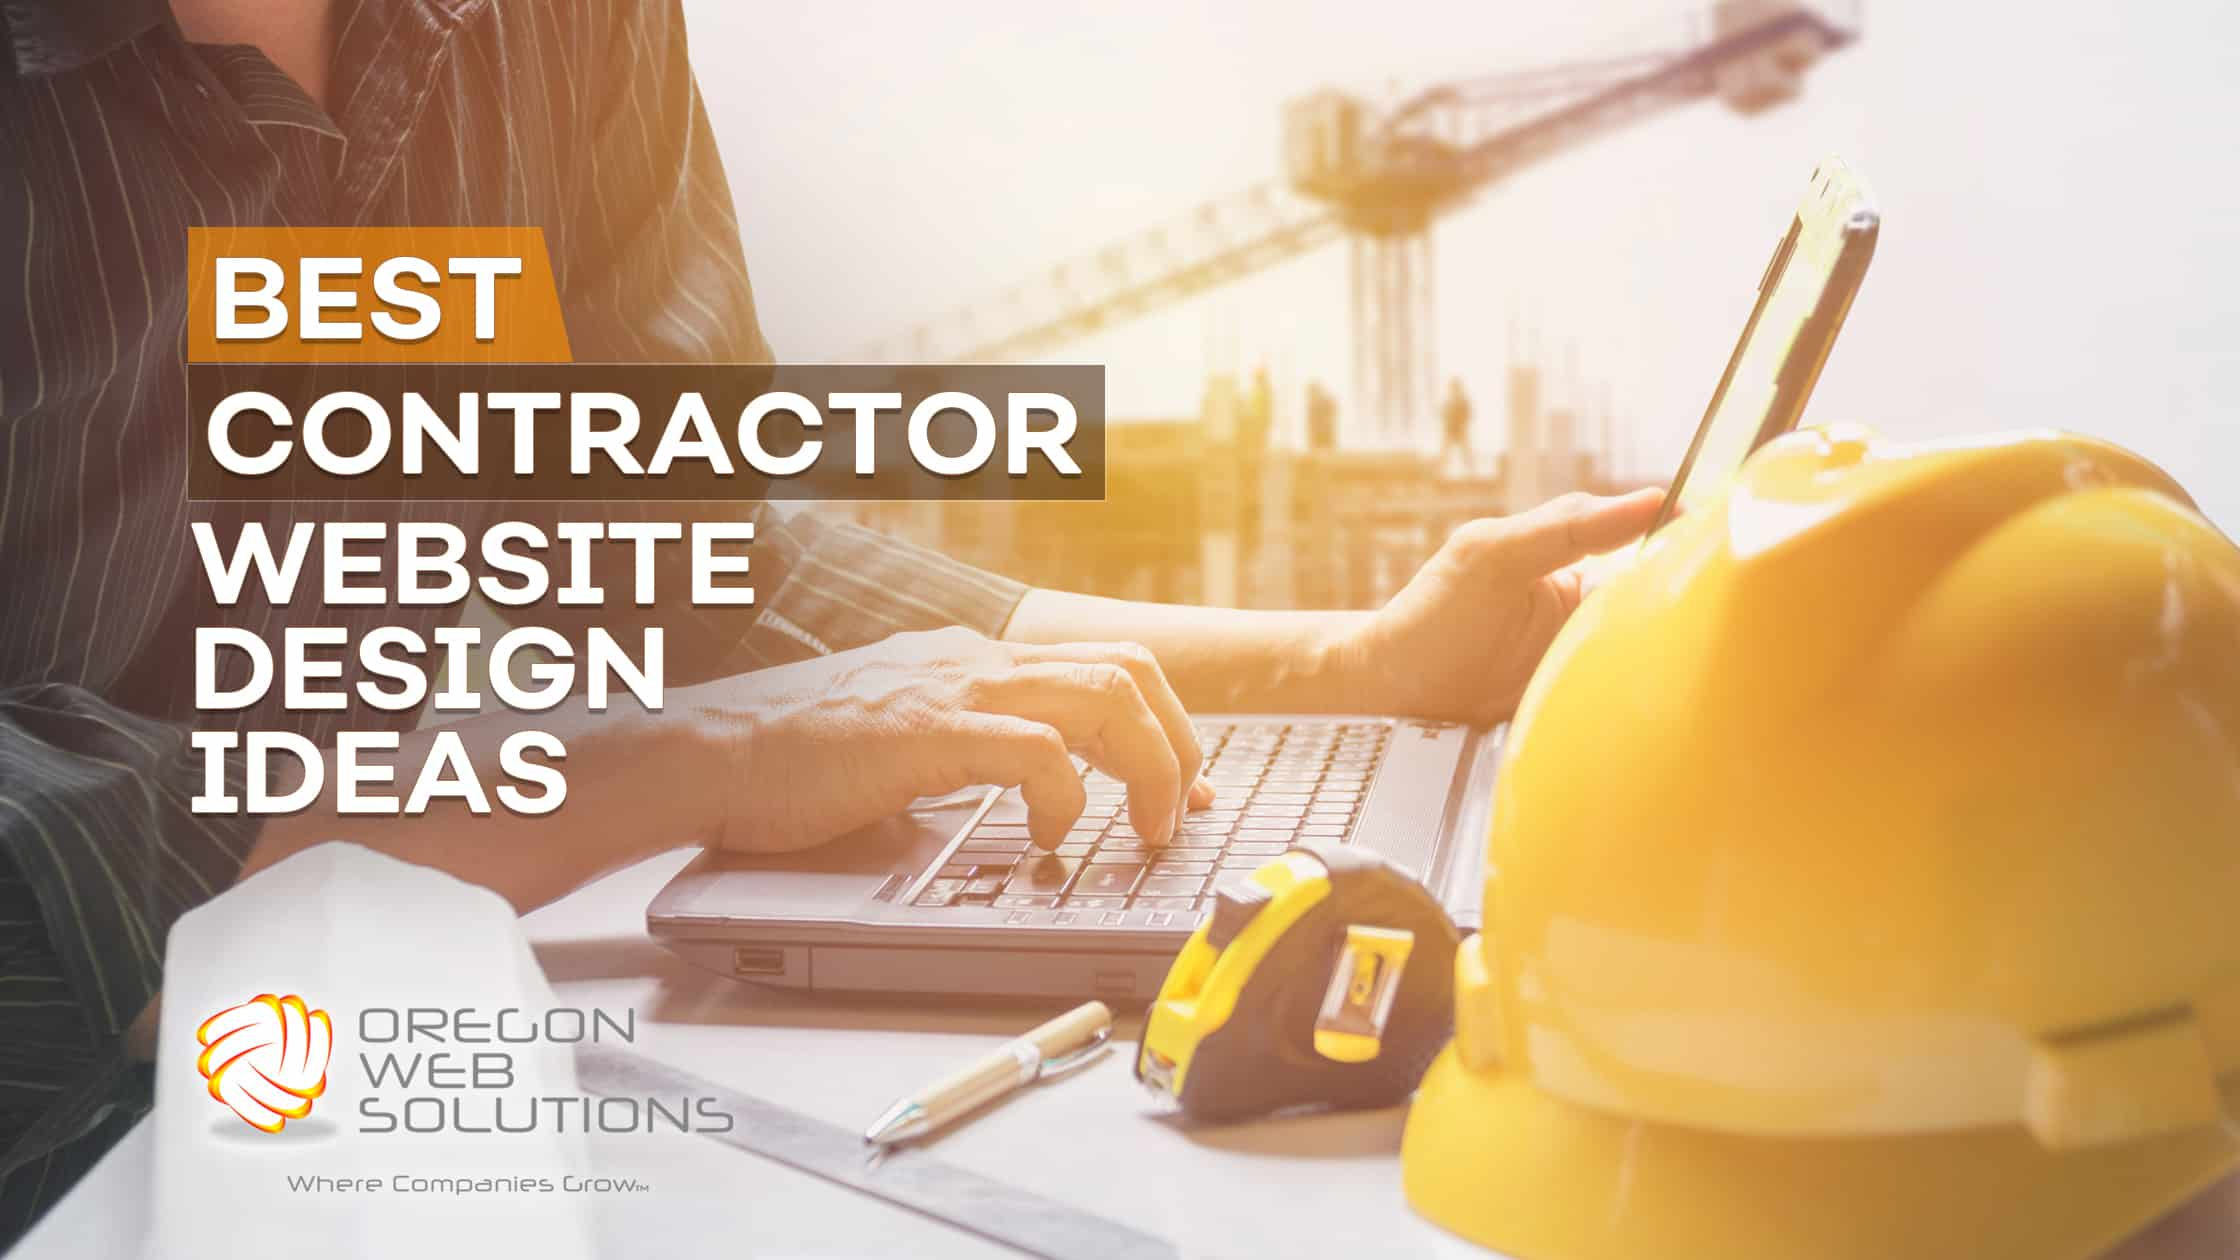 a picture of a contractor website design